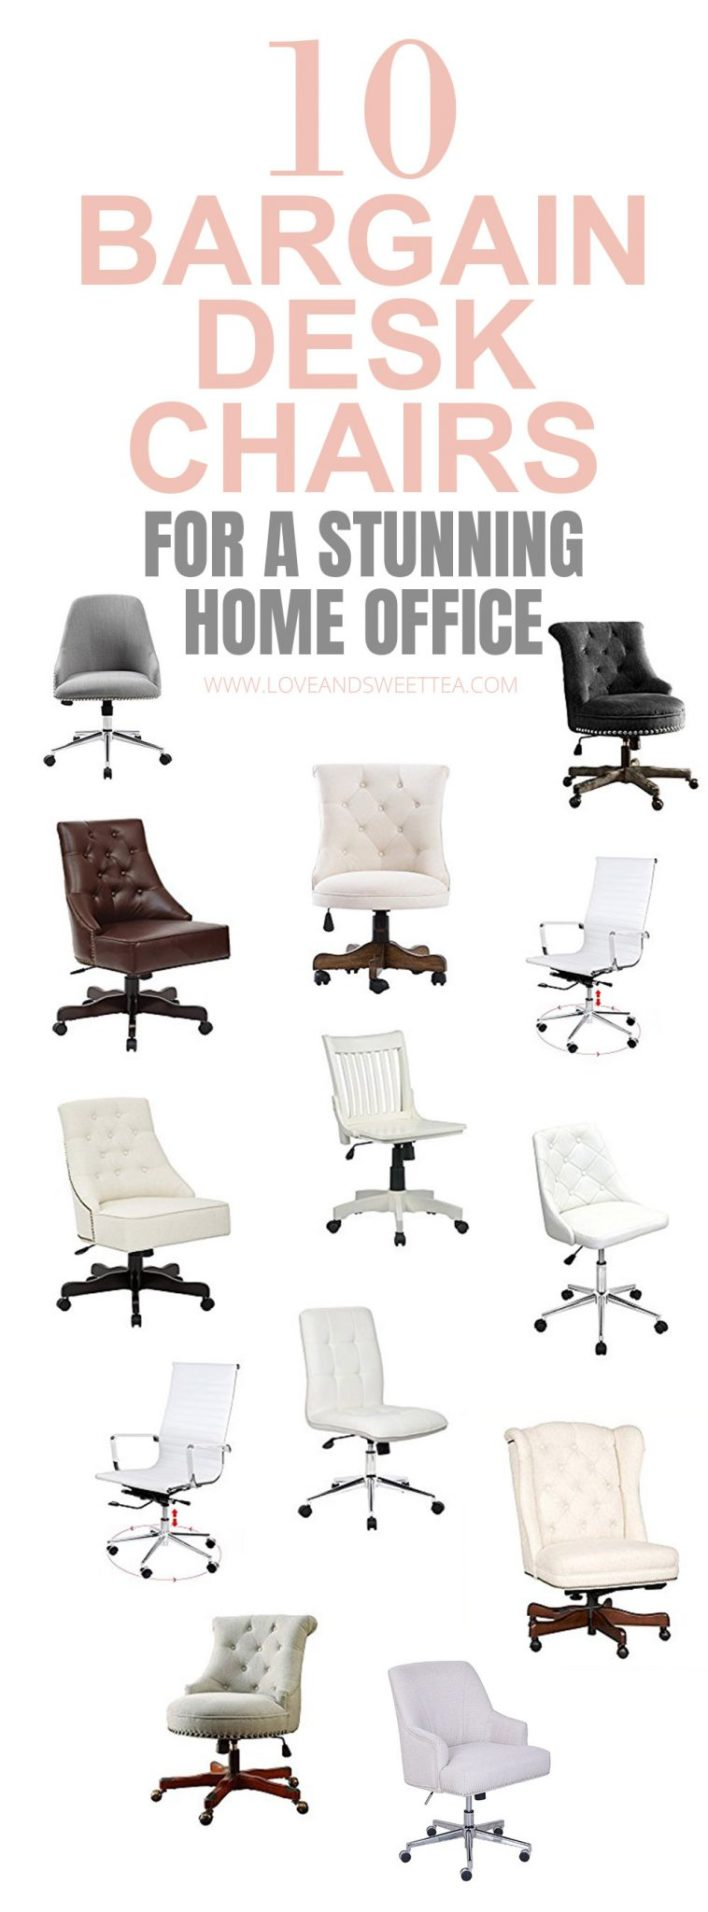 I love all these desk chairs, plus they're all really cheap desk chairs! Perfect for updating my home office! Saving for later!